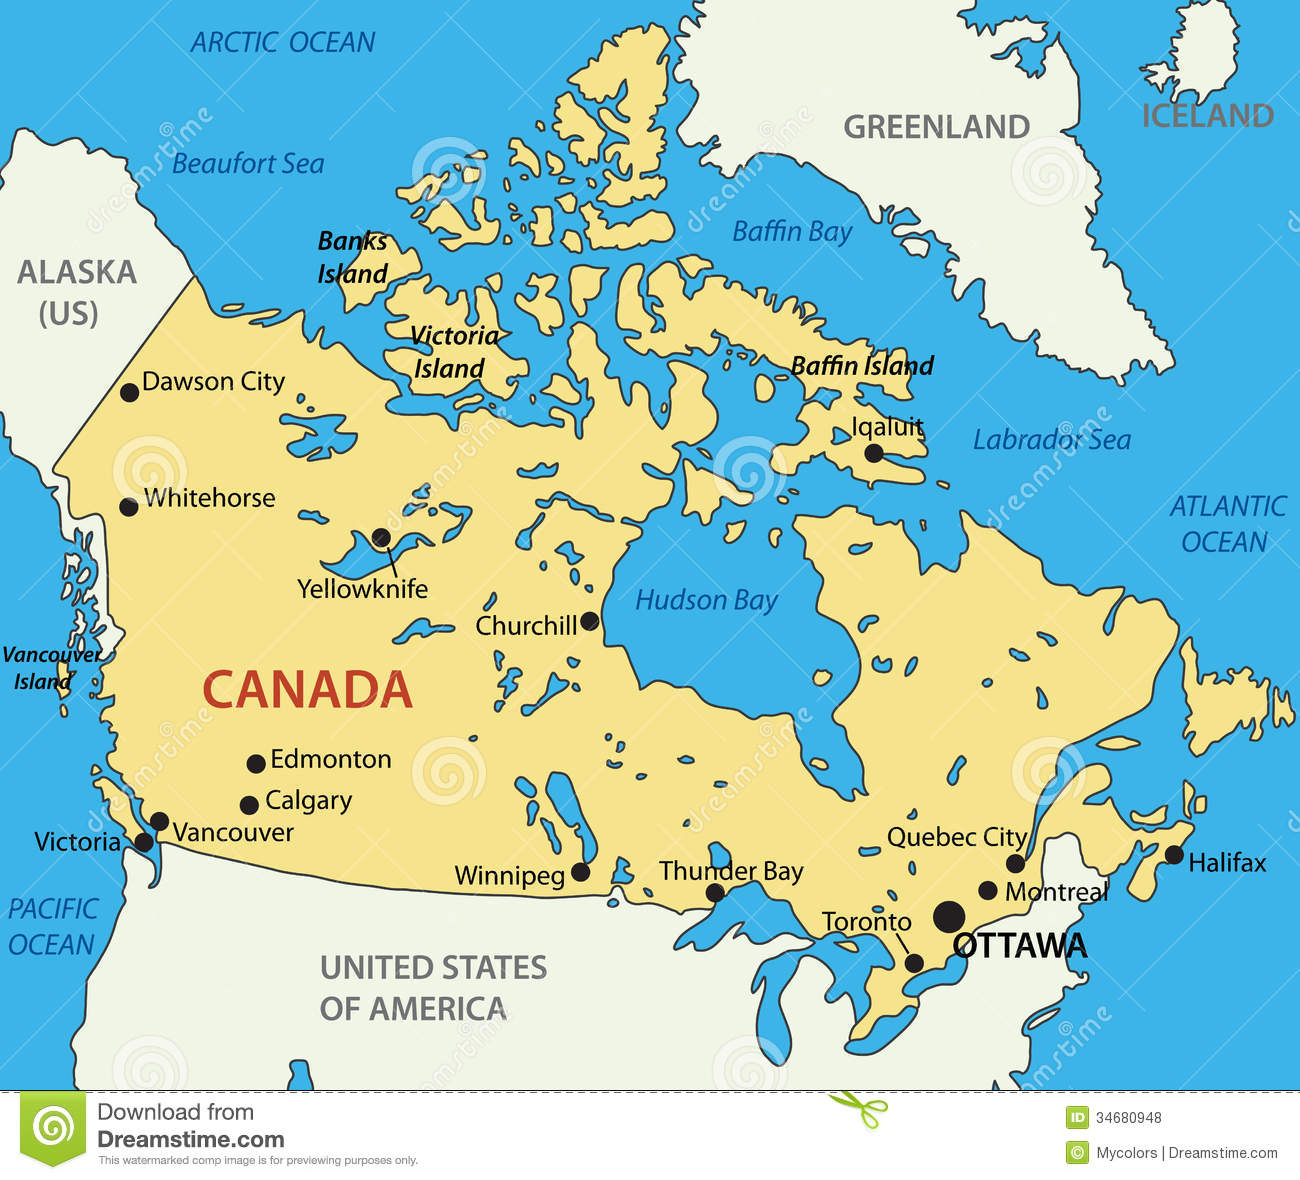 Map Of Canada Eps.Canada Vector Map Stock Vector Illustration Of Country 34680948